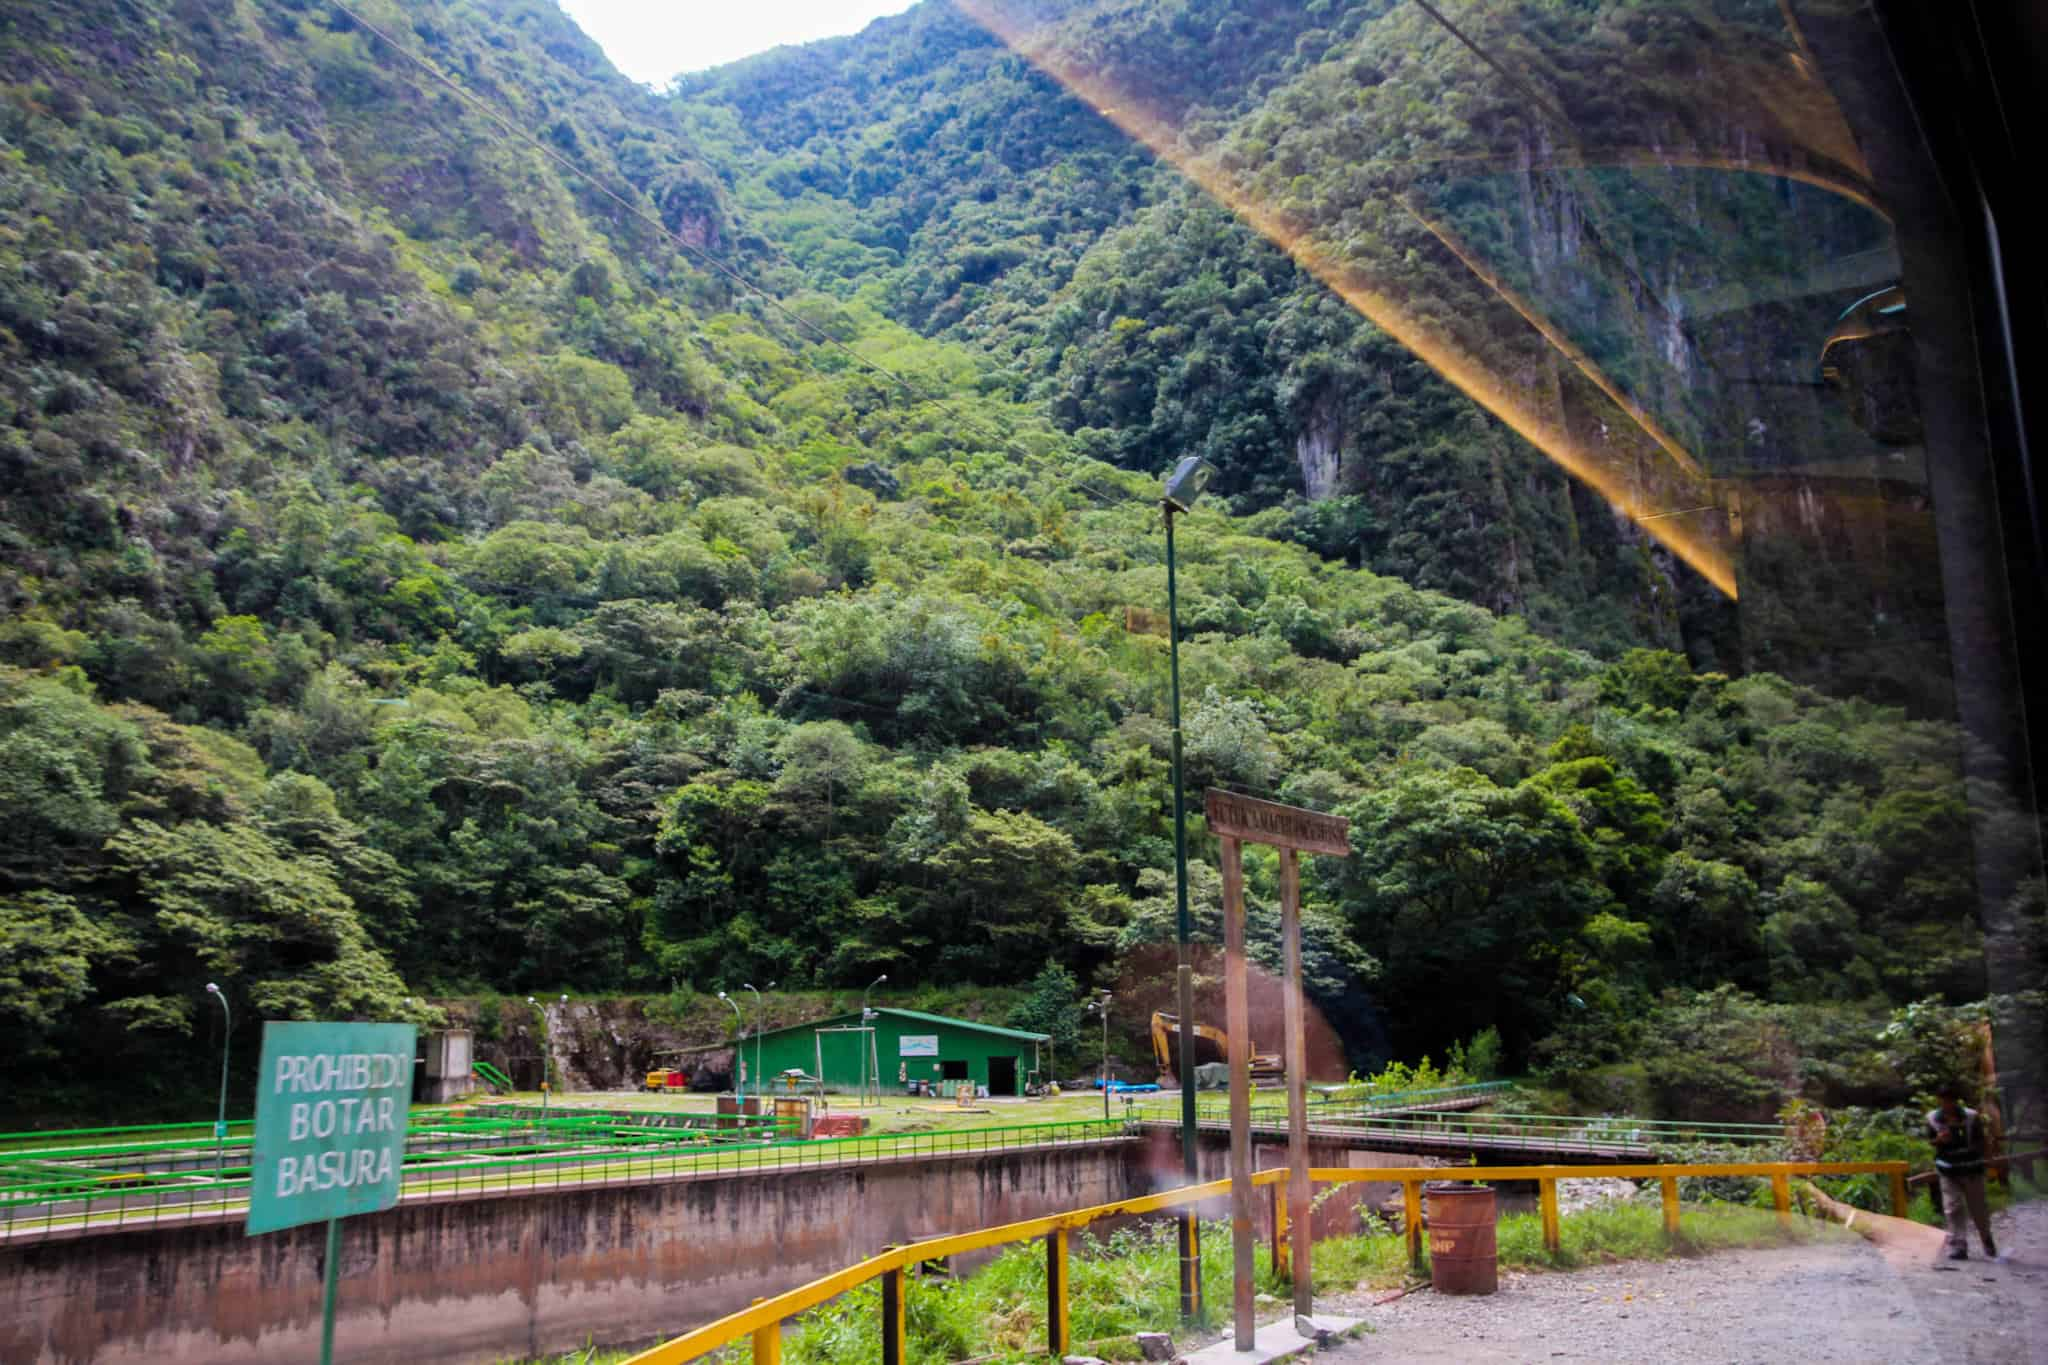 The views from the train ride to Aguas Calientes